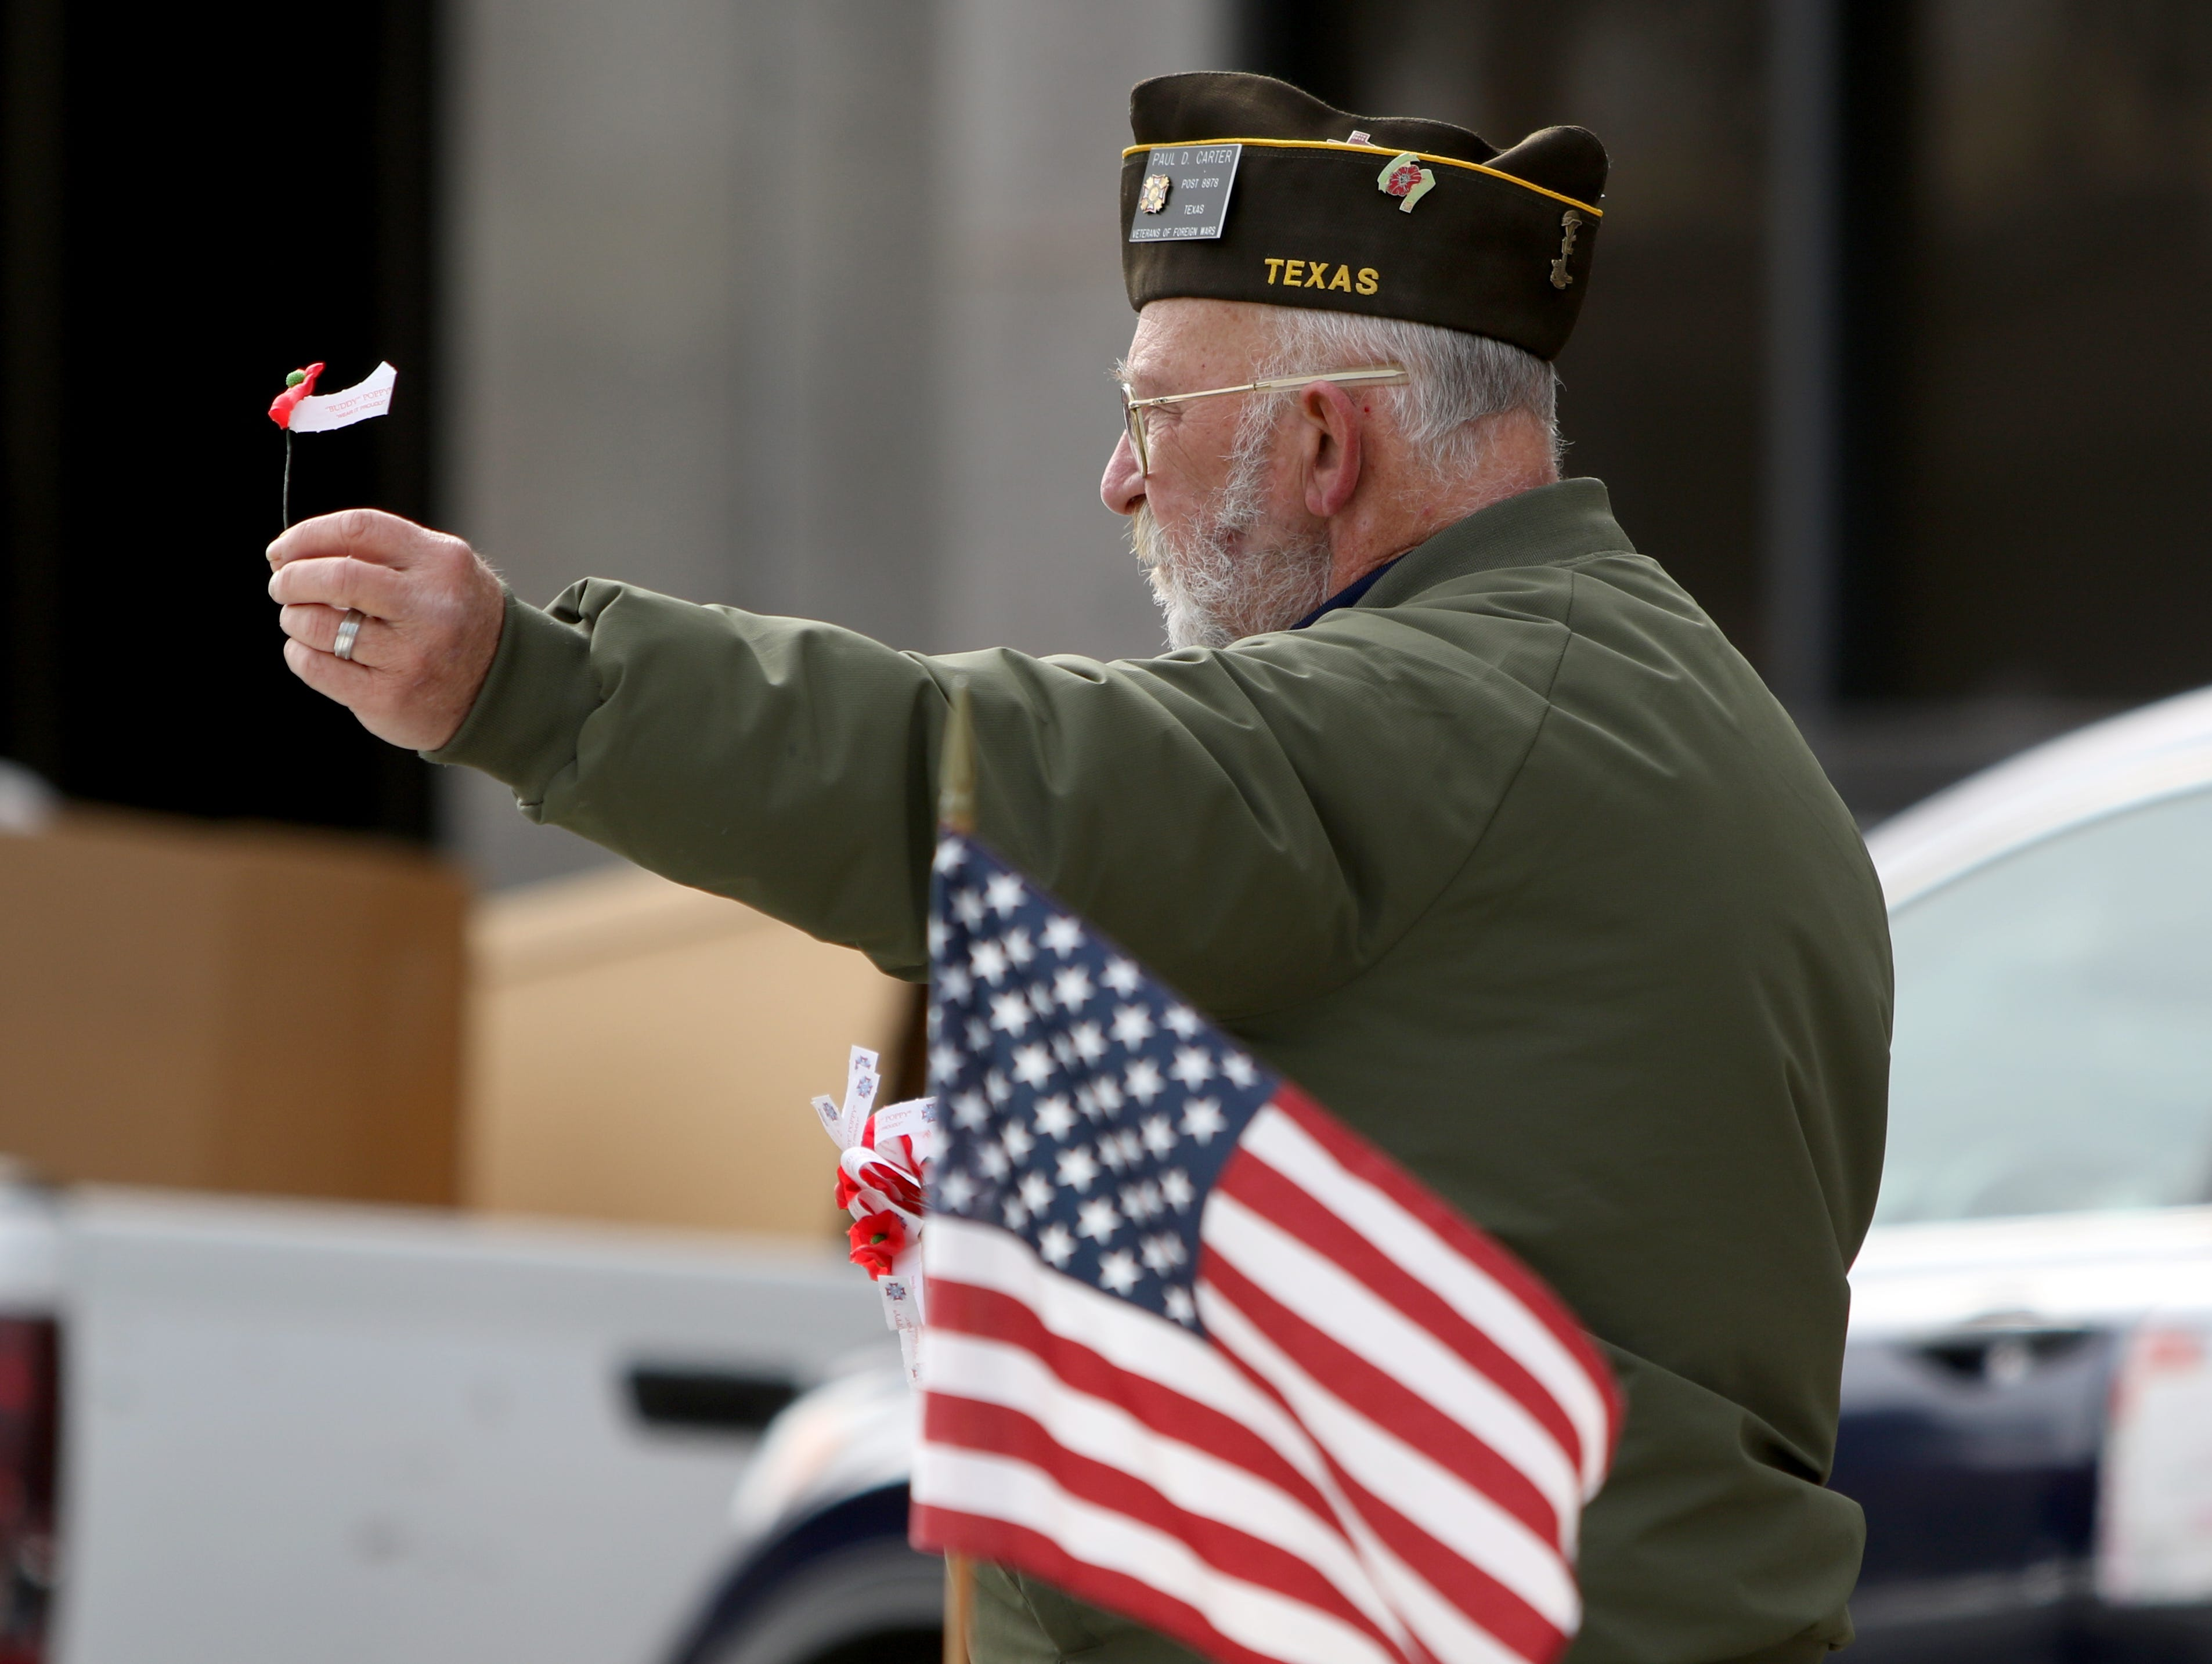 Paul Carter, VFW post 8878, hands out poppies during the Veterans Day parade Saturday, Nov. 10, 2018, in downtown Wichita Falls on the 100th anniversary of the Armistice of Compiègne that ended fighting in World War I.